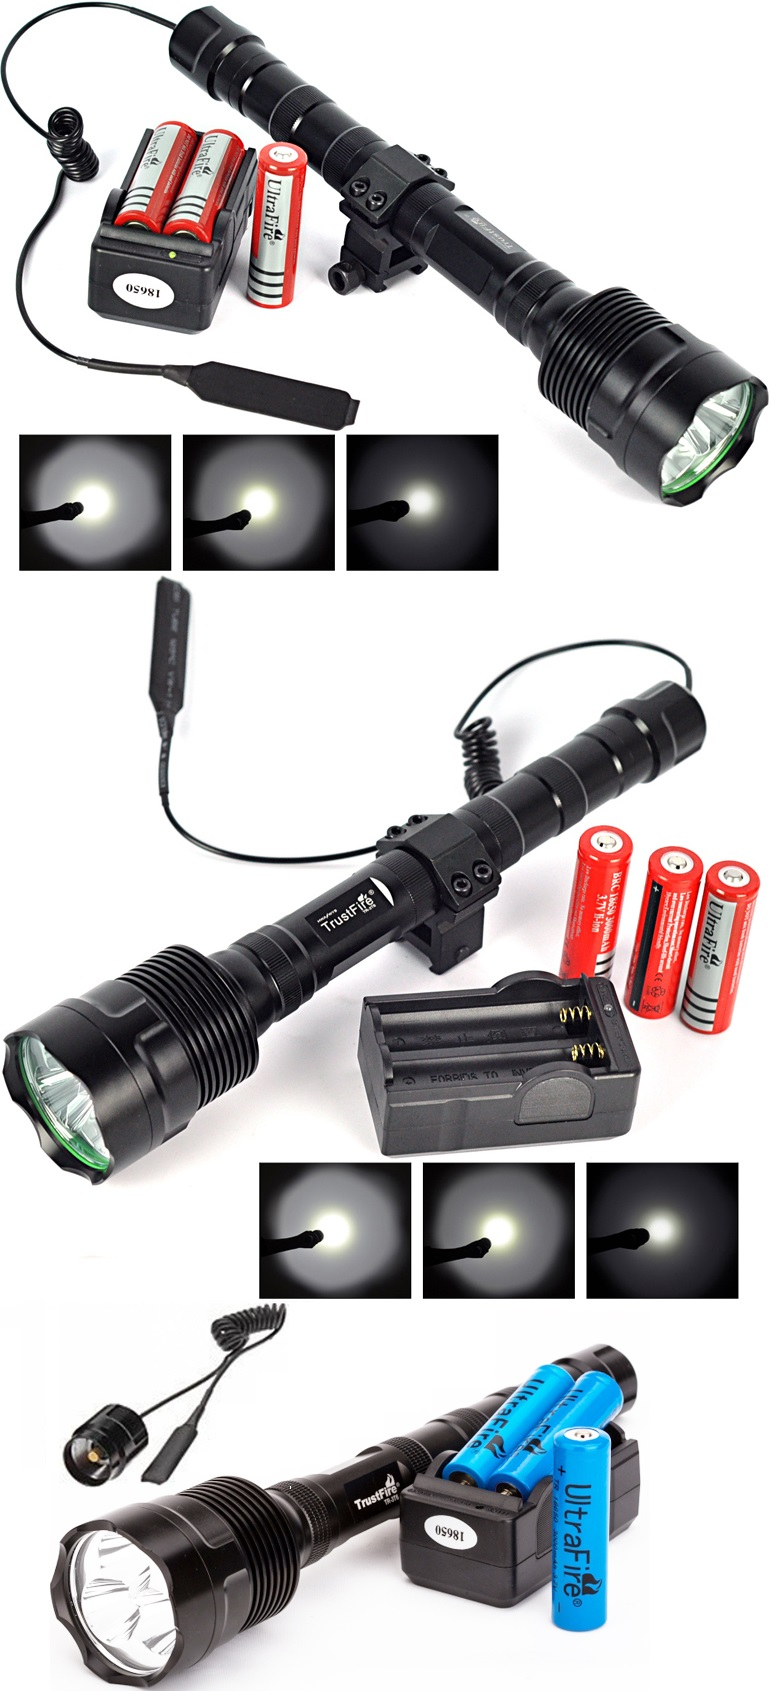 Trustfire-6000Lm-Powerful-XML-3xT6-LED-Tactical-Flashlight-18650-Lantern-5Mode-Torch-Battery-Charger-Remote-Switch